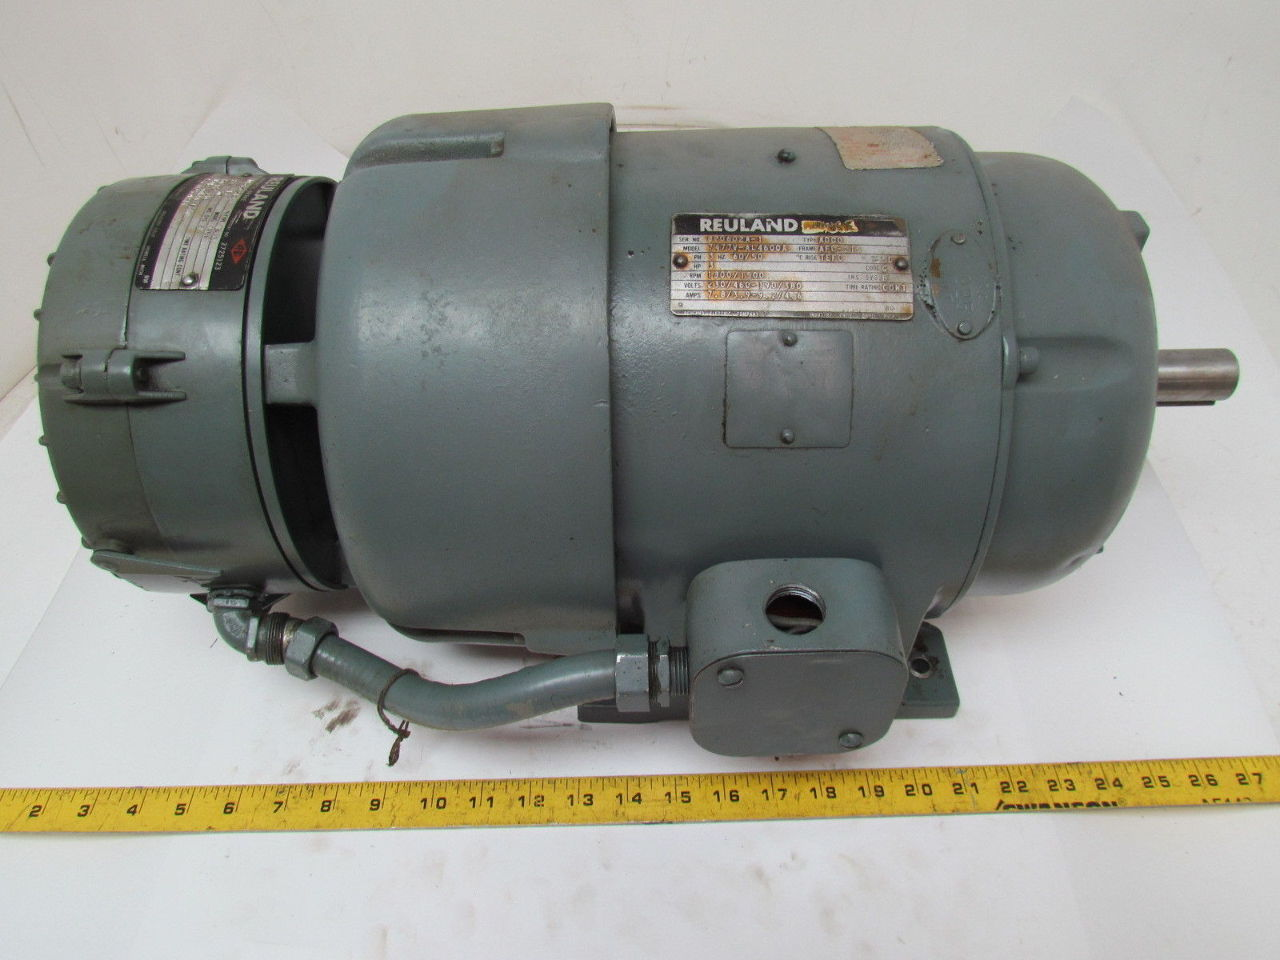 Reuland 3 hp 3 ph 1800 rpm 230 460v tefc electric motor w for 1800 rpm electric motor